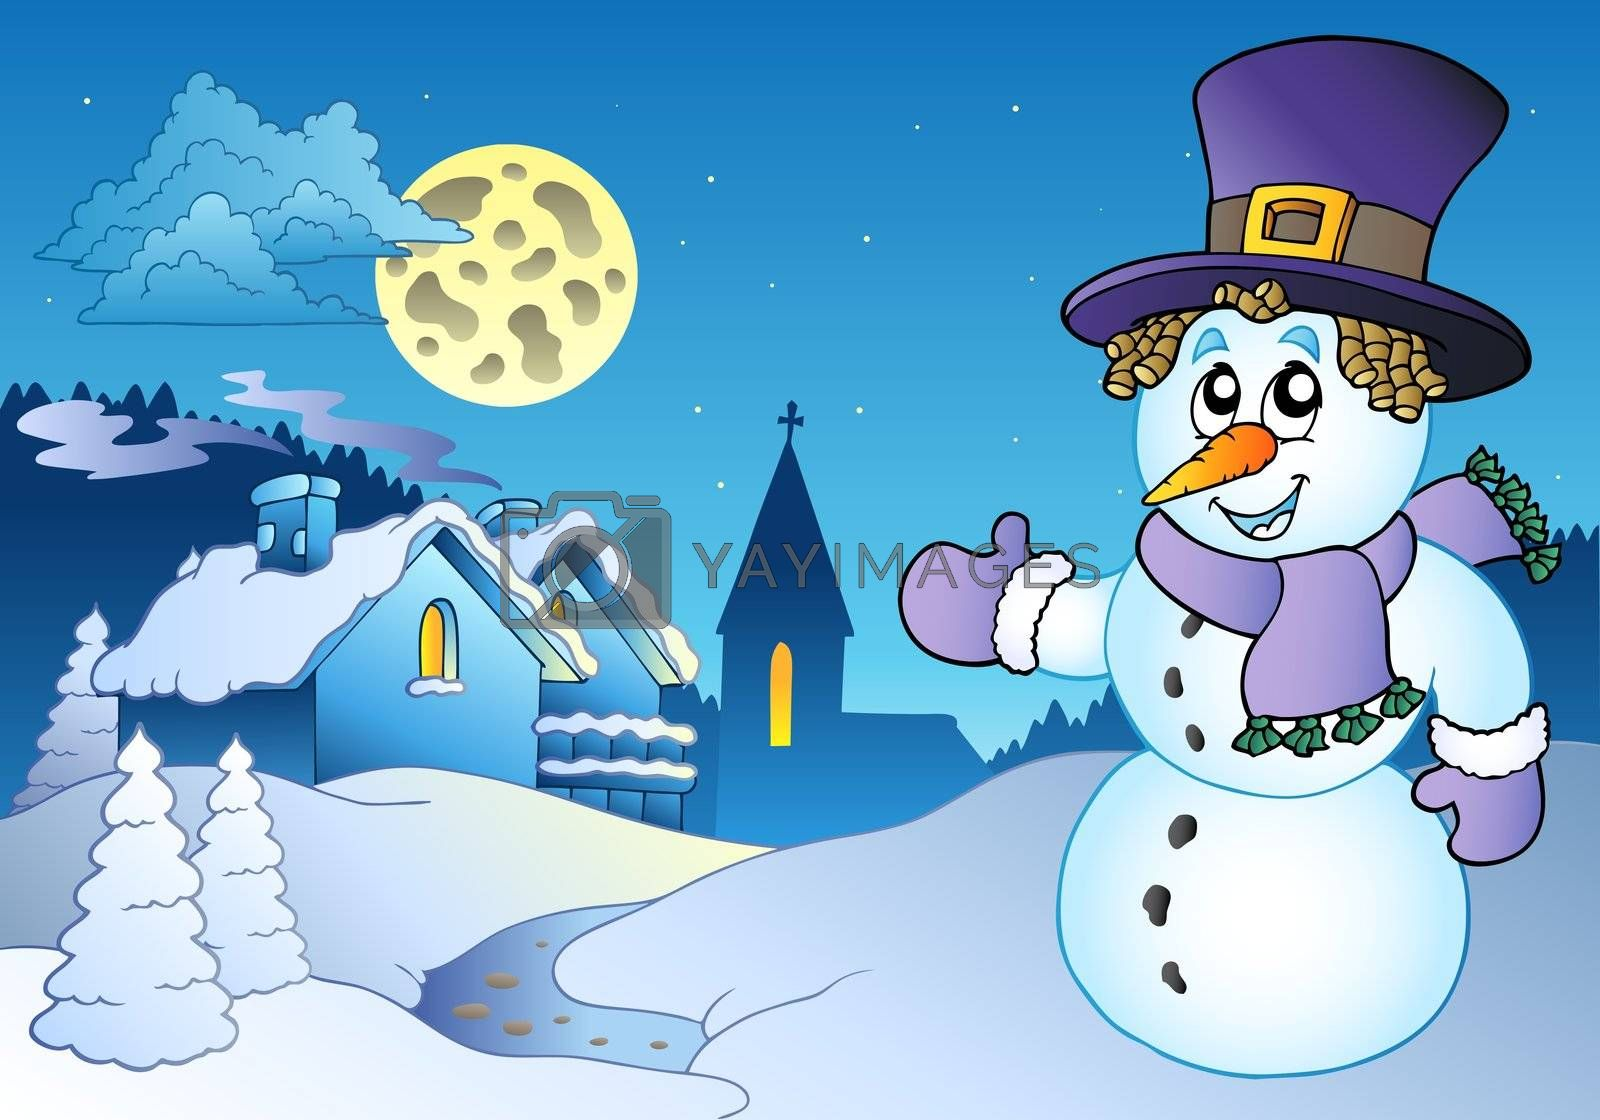 Snowman near small village - vector illustration.